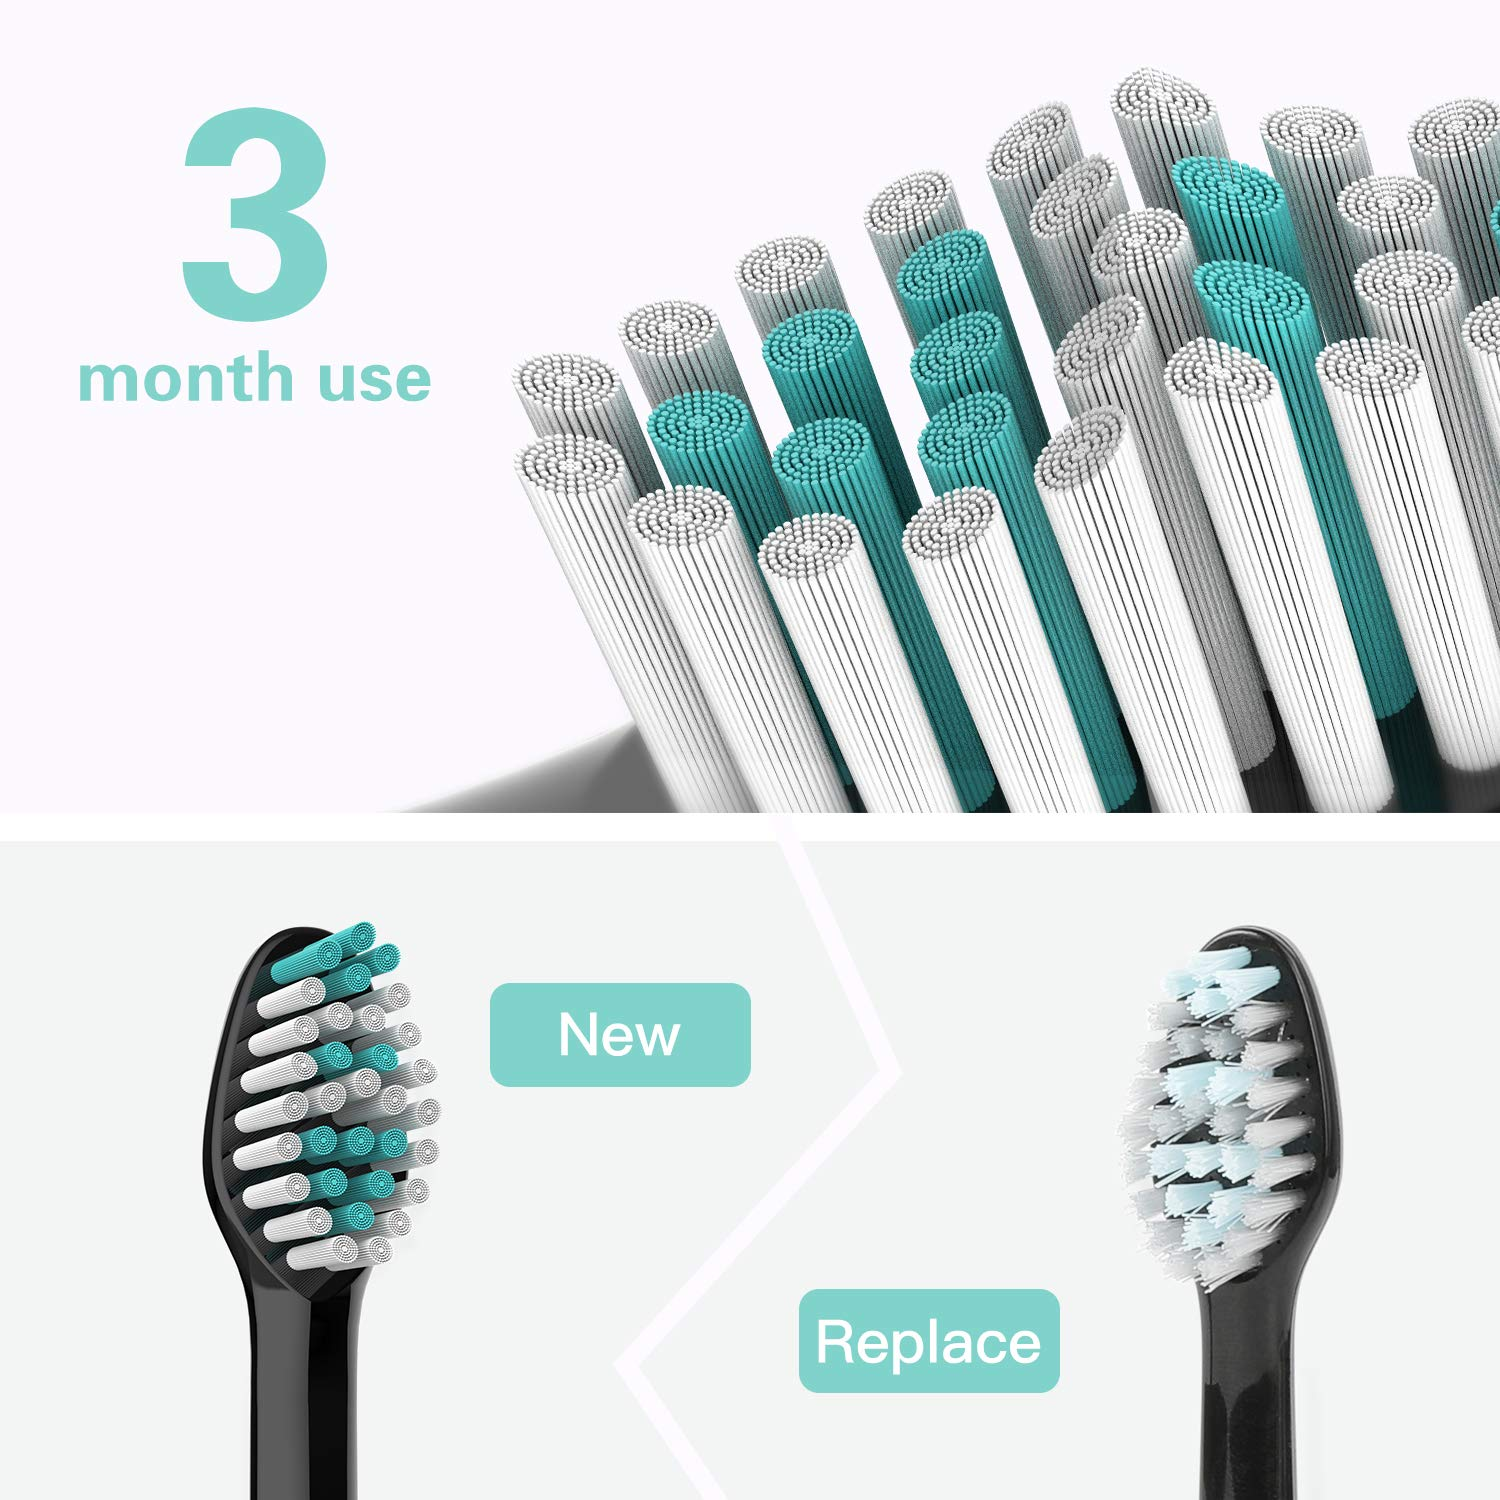 Amazon.com: ABOX 8 Pack Replacement Toothbrush Heads, Extral Soft Bristles Dental Care Health Clean Refill Brush Heads for Sonic Electronic Toothbrush, ...